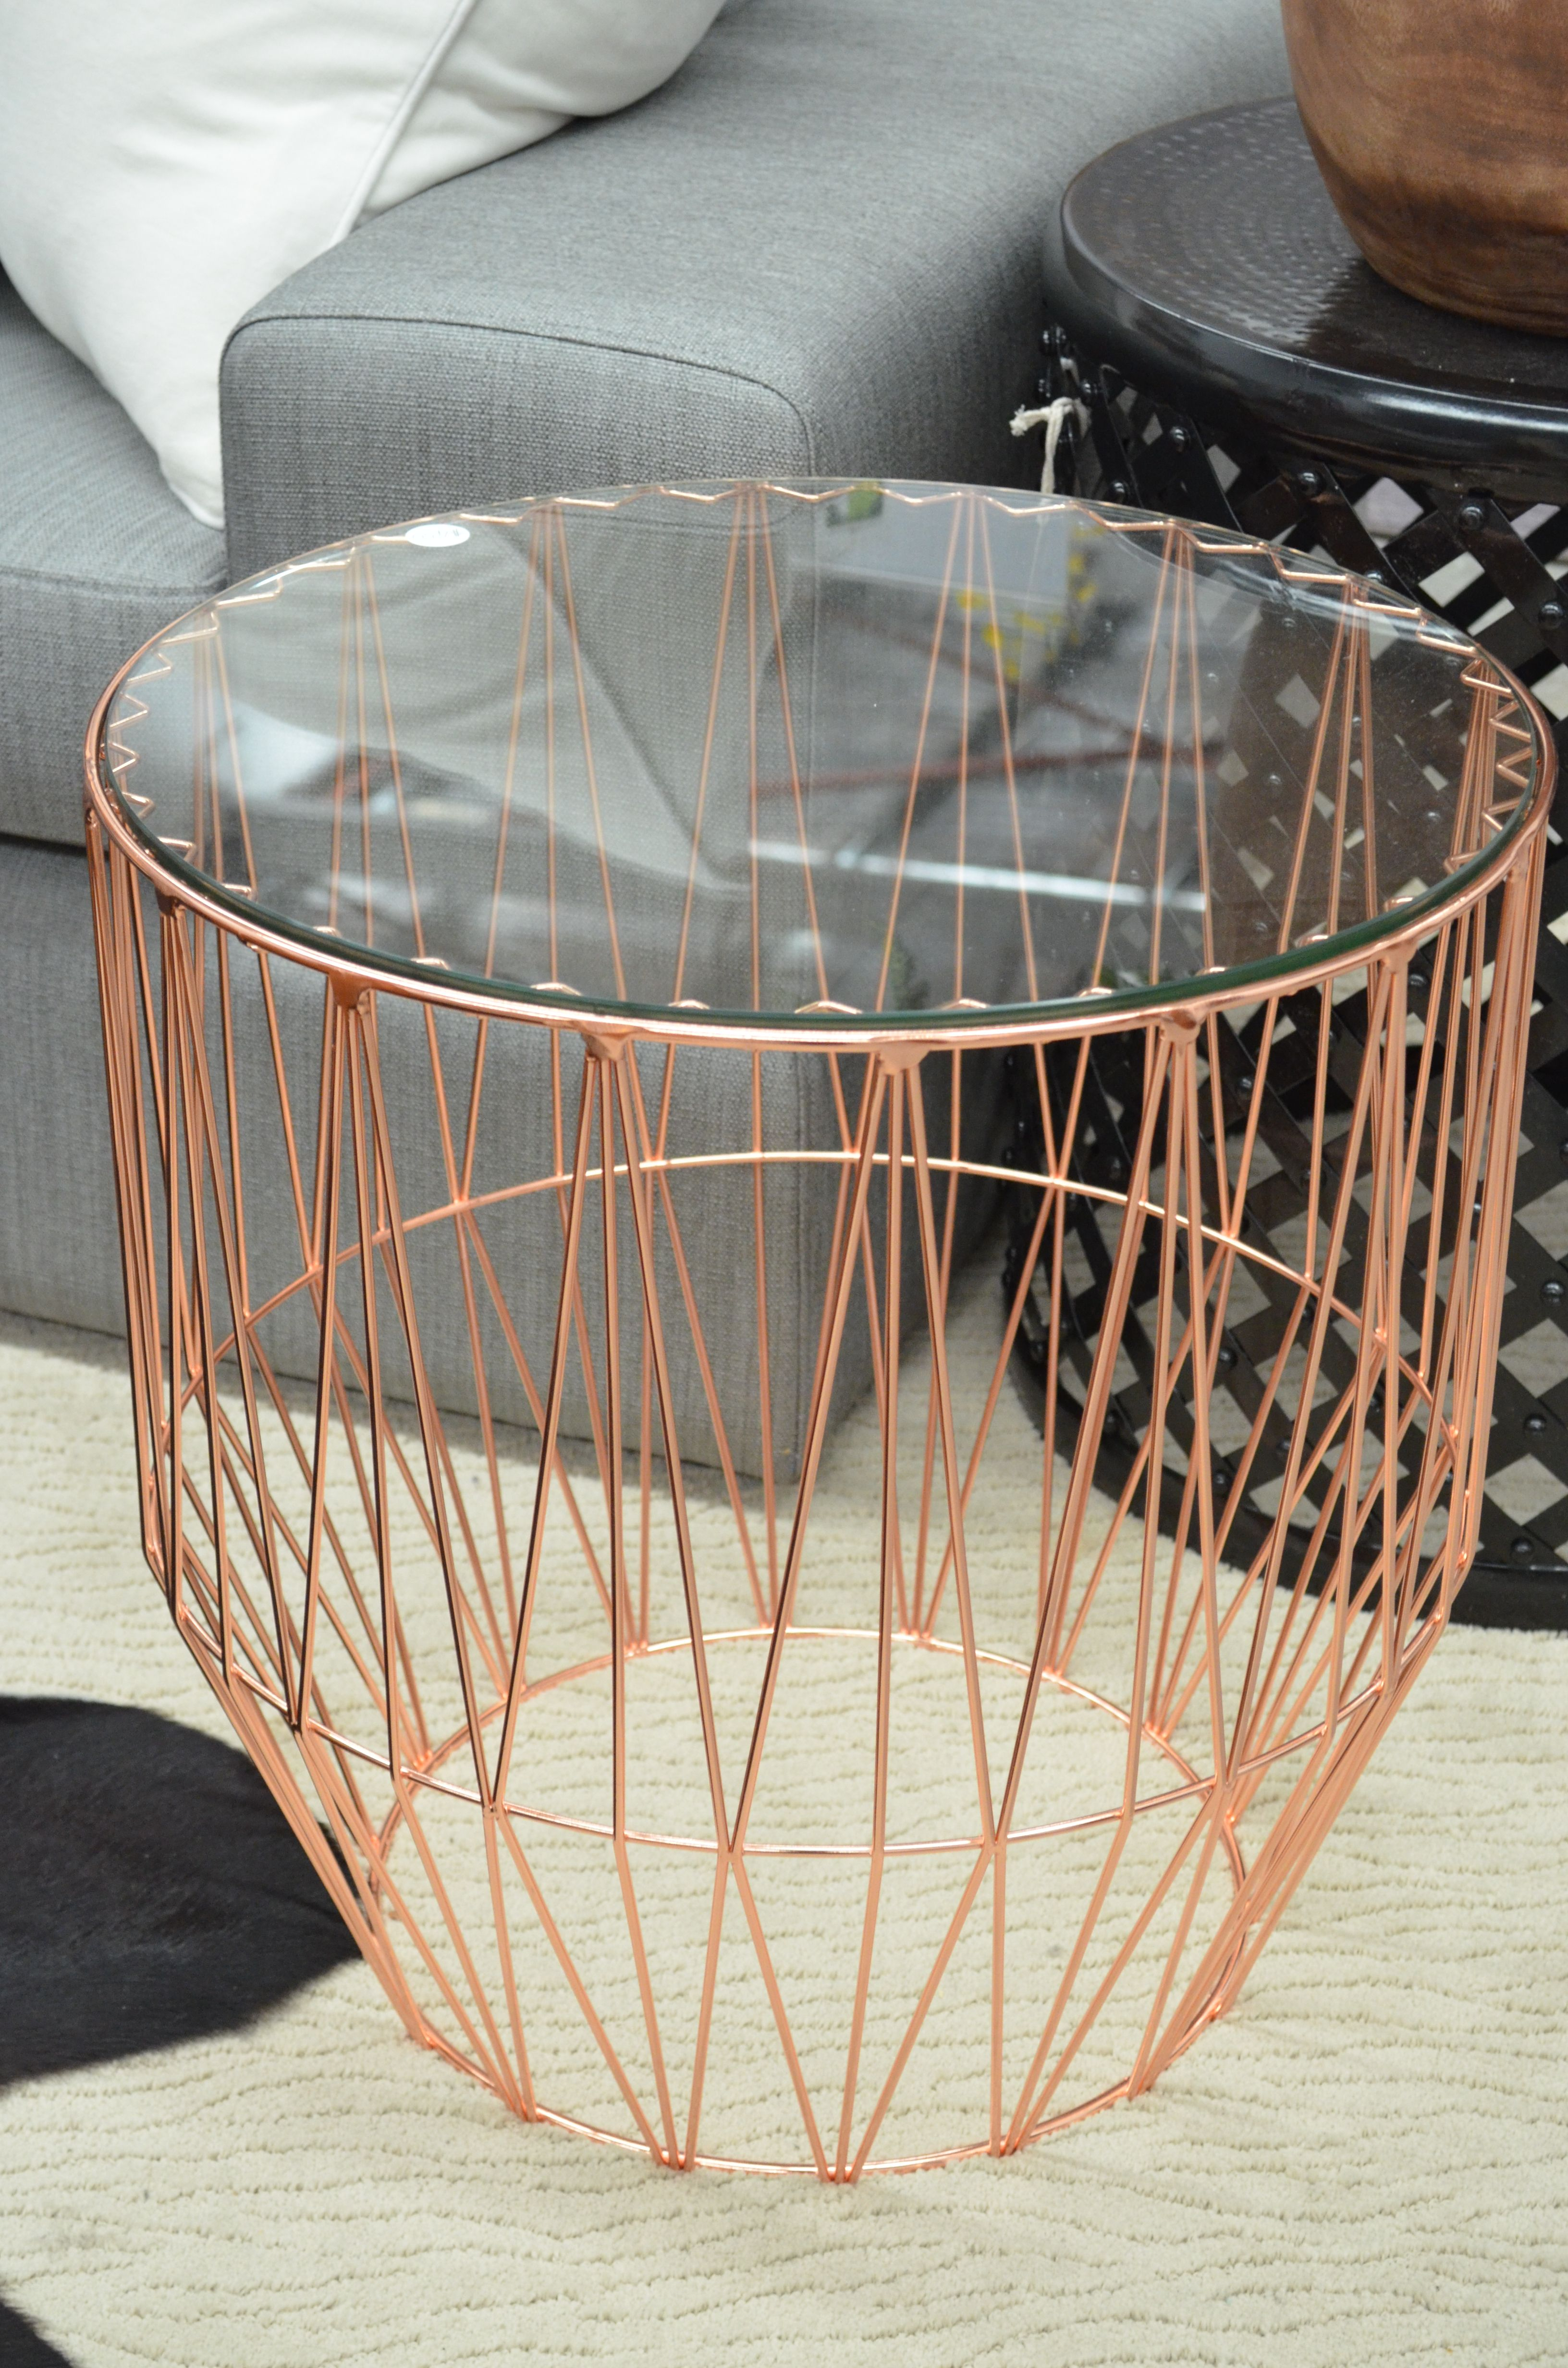 wire furniture. Cheap A Rosy Glow Glass Topped Copper Wire Side Table From The General Store Furniture And Homewares Osborne Park With I